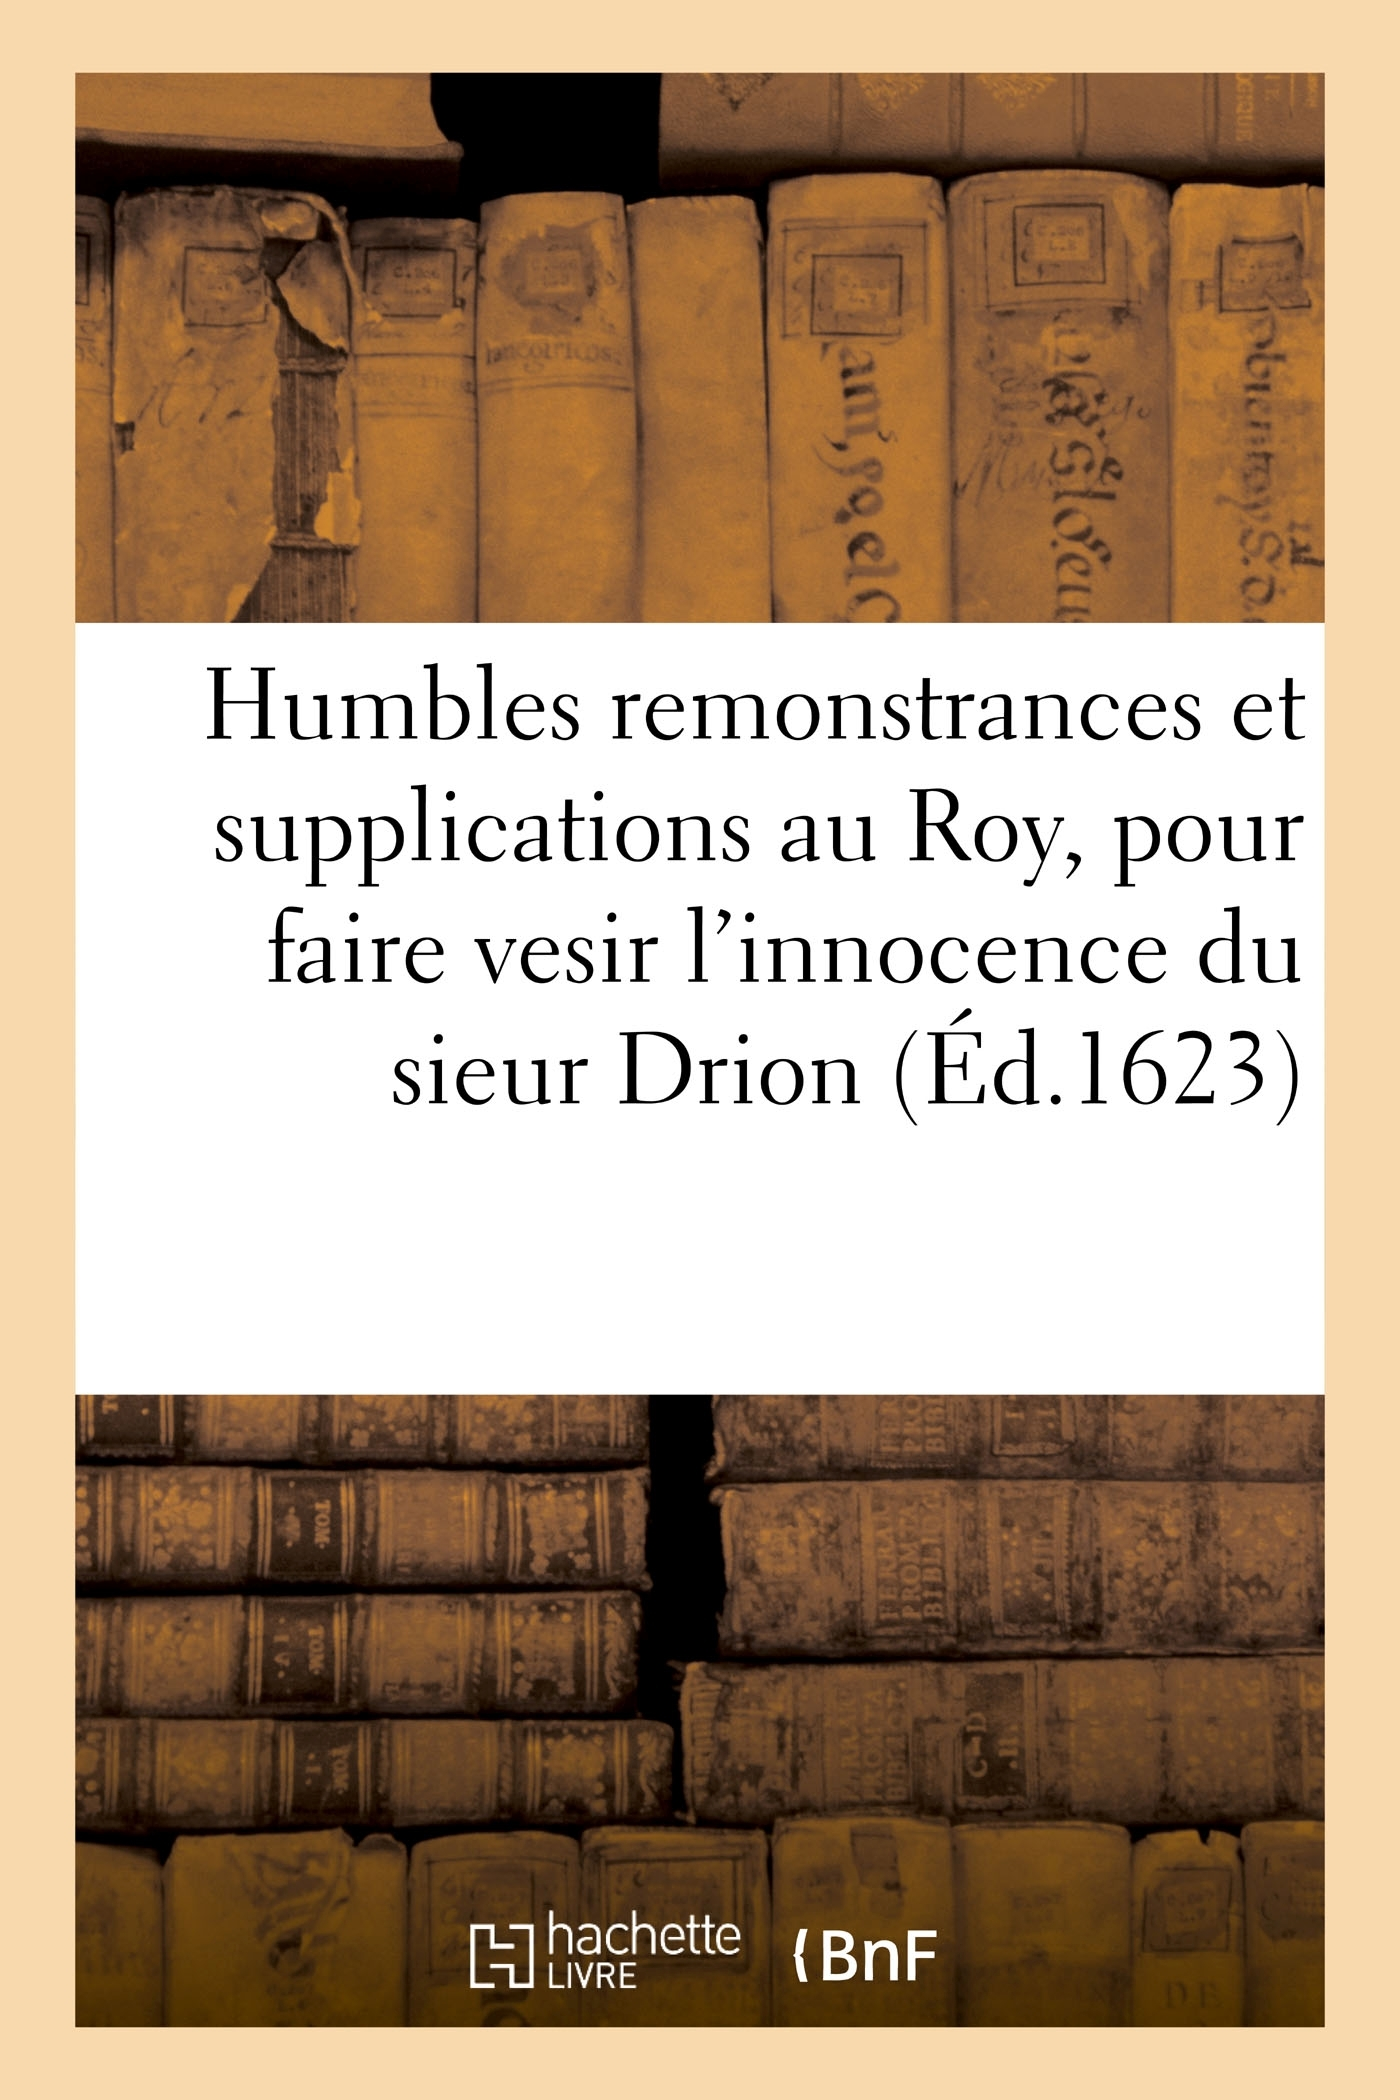 HUMBLES REMONSTRANCES ET SUPPLICATIONS AU ROY, POUR FAIRE VESIR L'INNOCENCE DU SIEUR DRION - L'UN DE